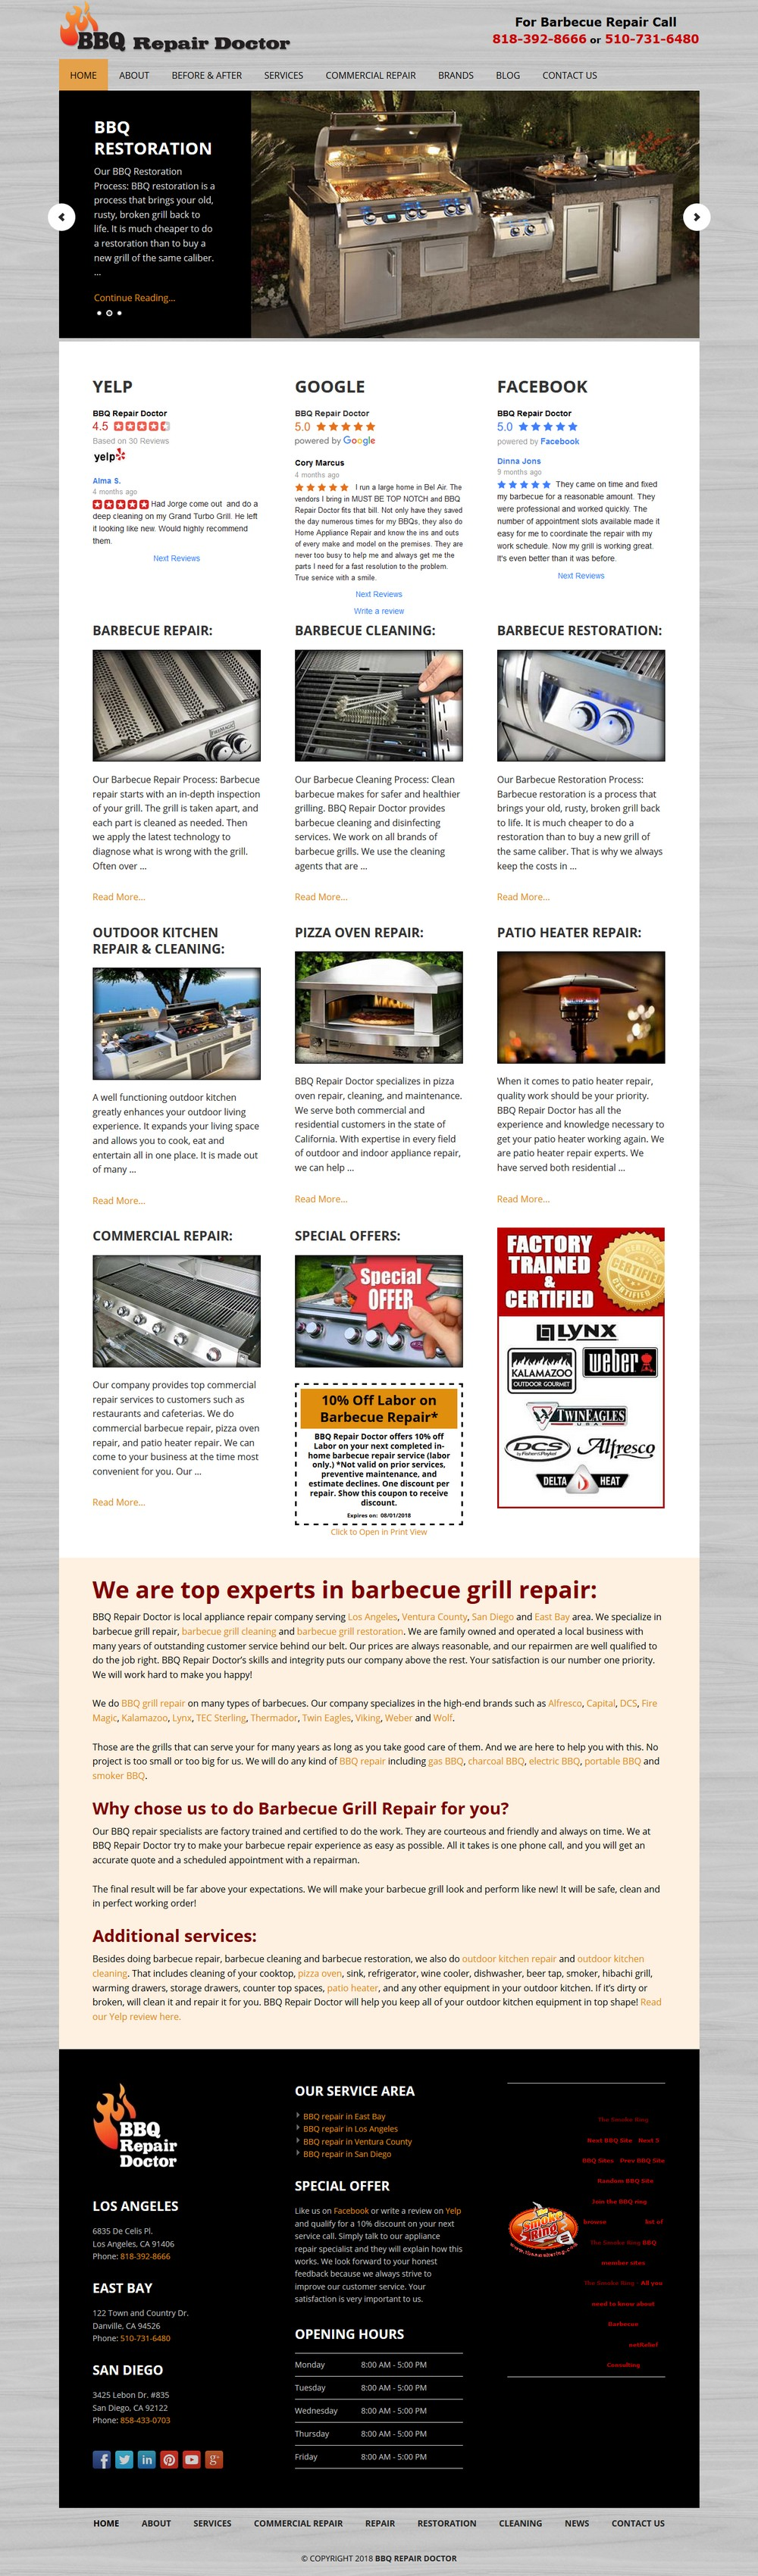 Barbecue Grill Repair - Successfully Delivered Projects On-Time and On-Budget. Improved Website Conversation Rate By 80% Against Existing Control.